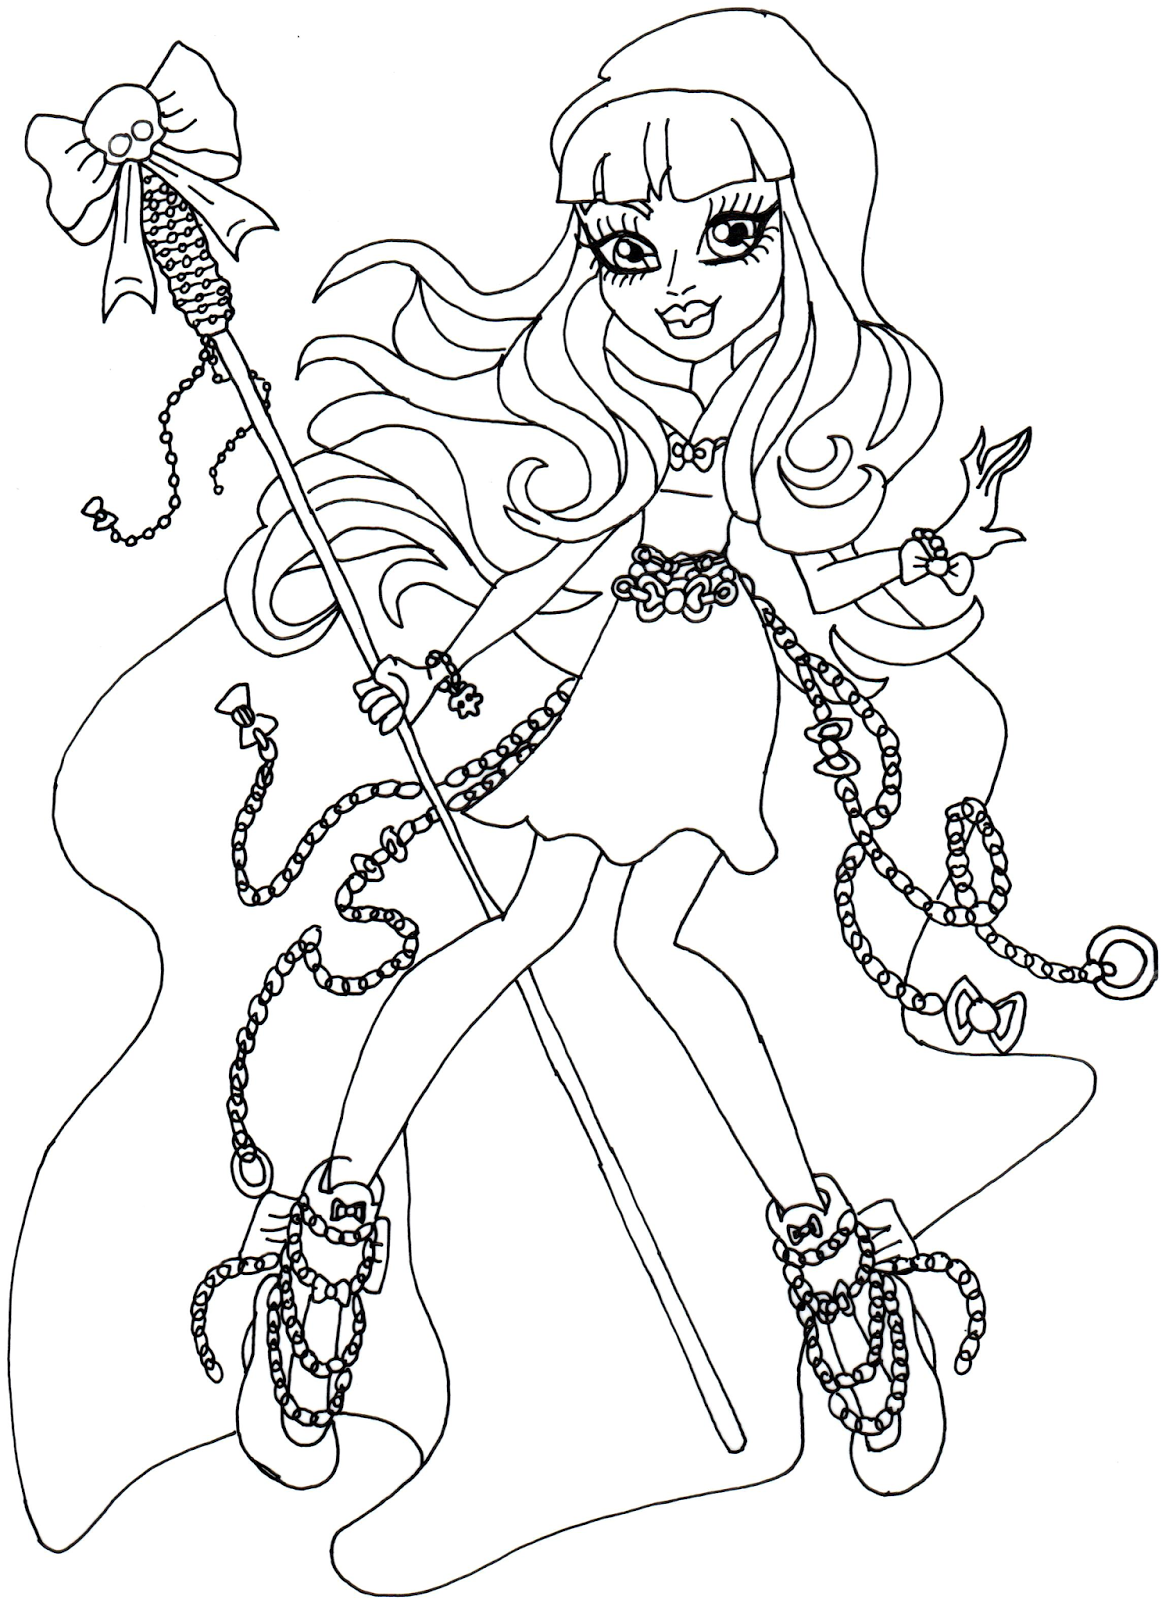 Free Printable Monster High Coloring Pages: River Styxx ...